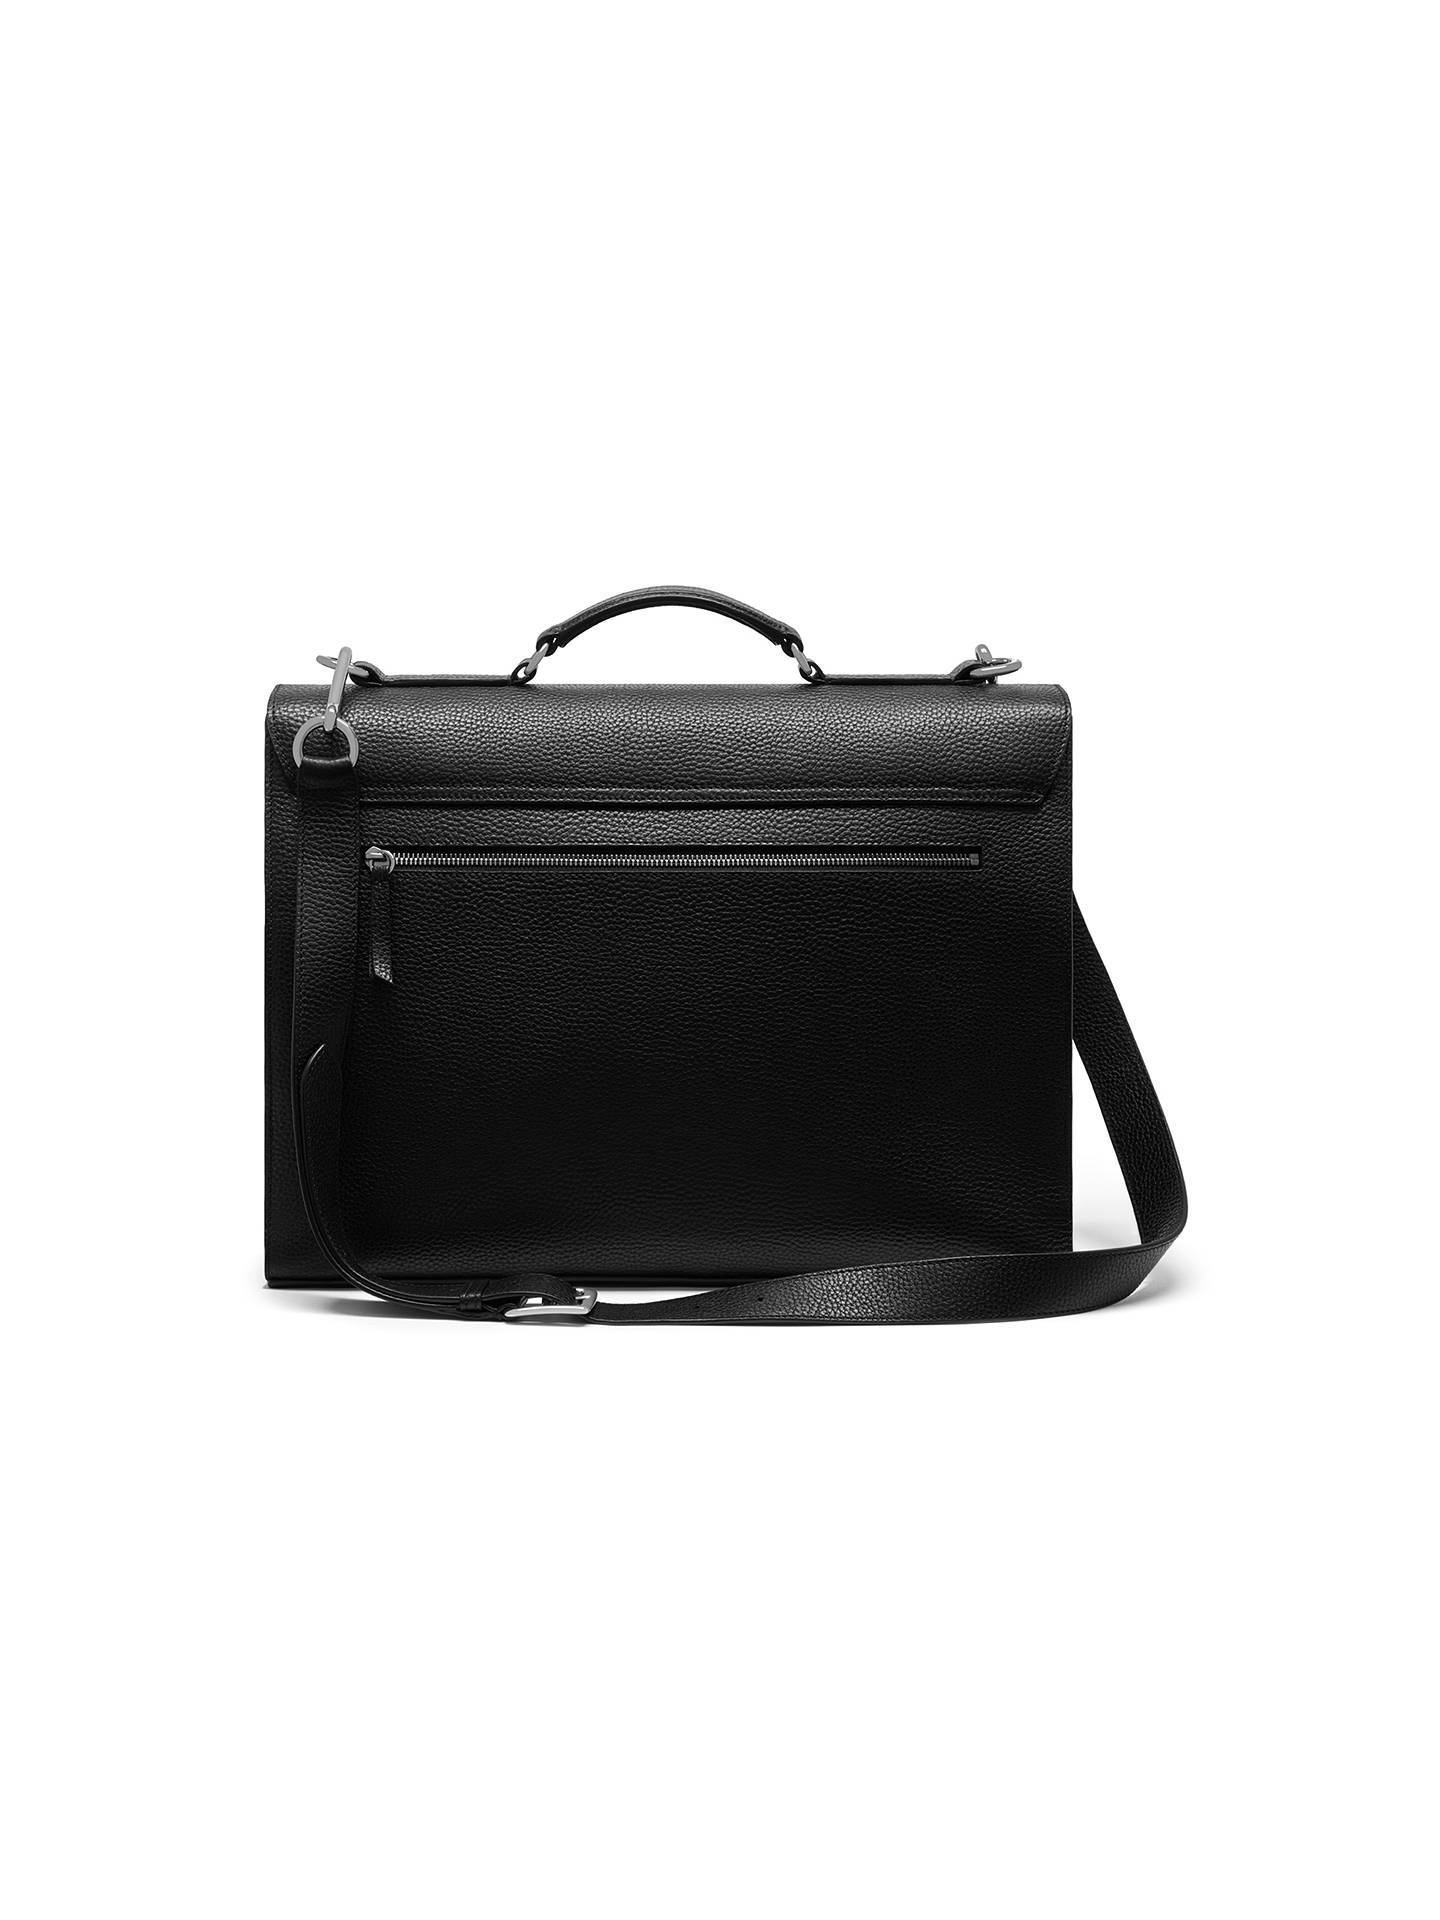 2a12d1ca077c clearance mulberry belgrave 24hour bag lyst 48e03 ca242  best price  buymulberry chiltern buckle briefcase black online at johnlewis 3d610 ee03c